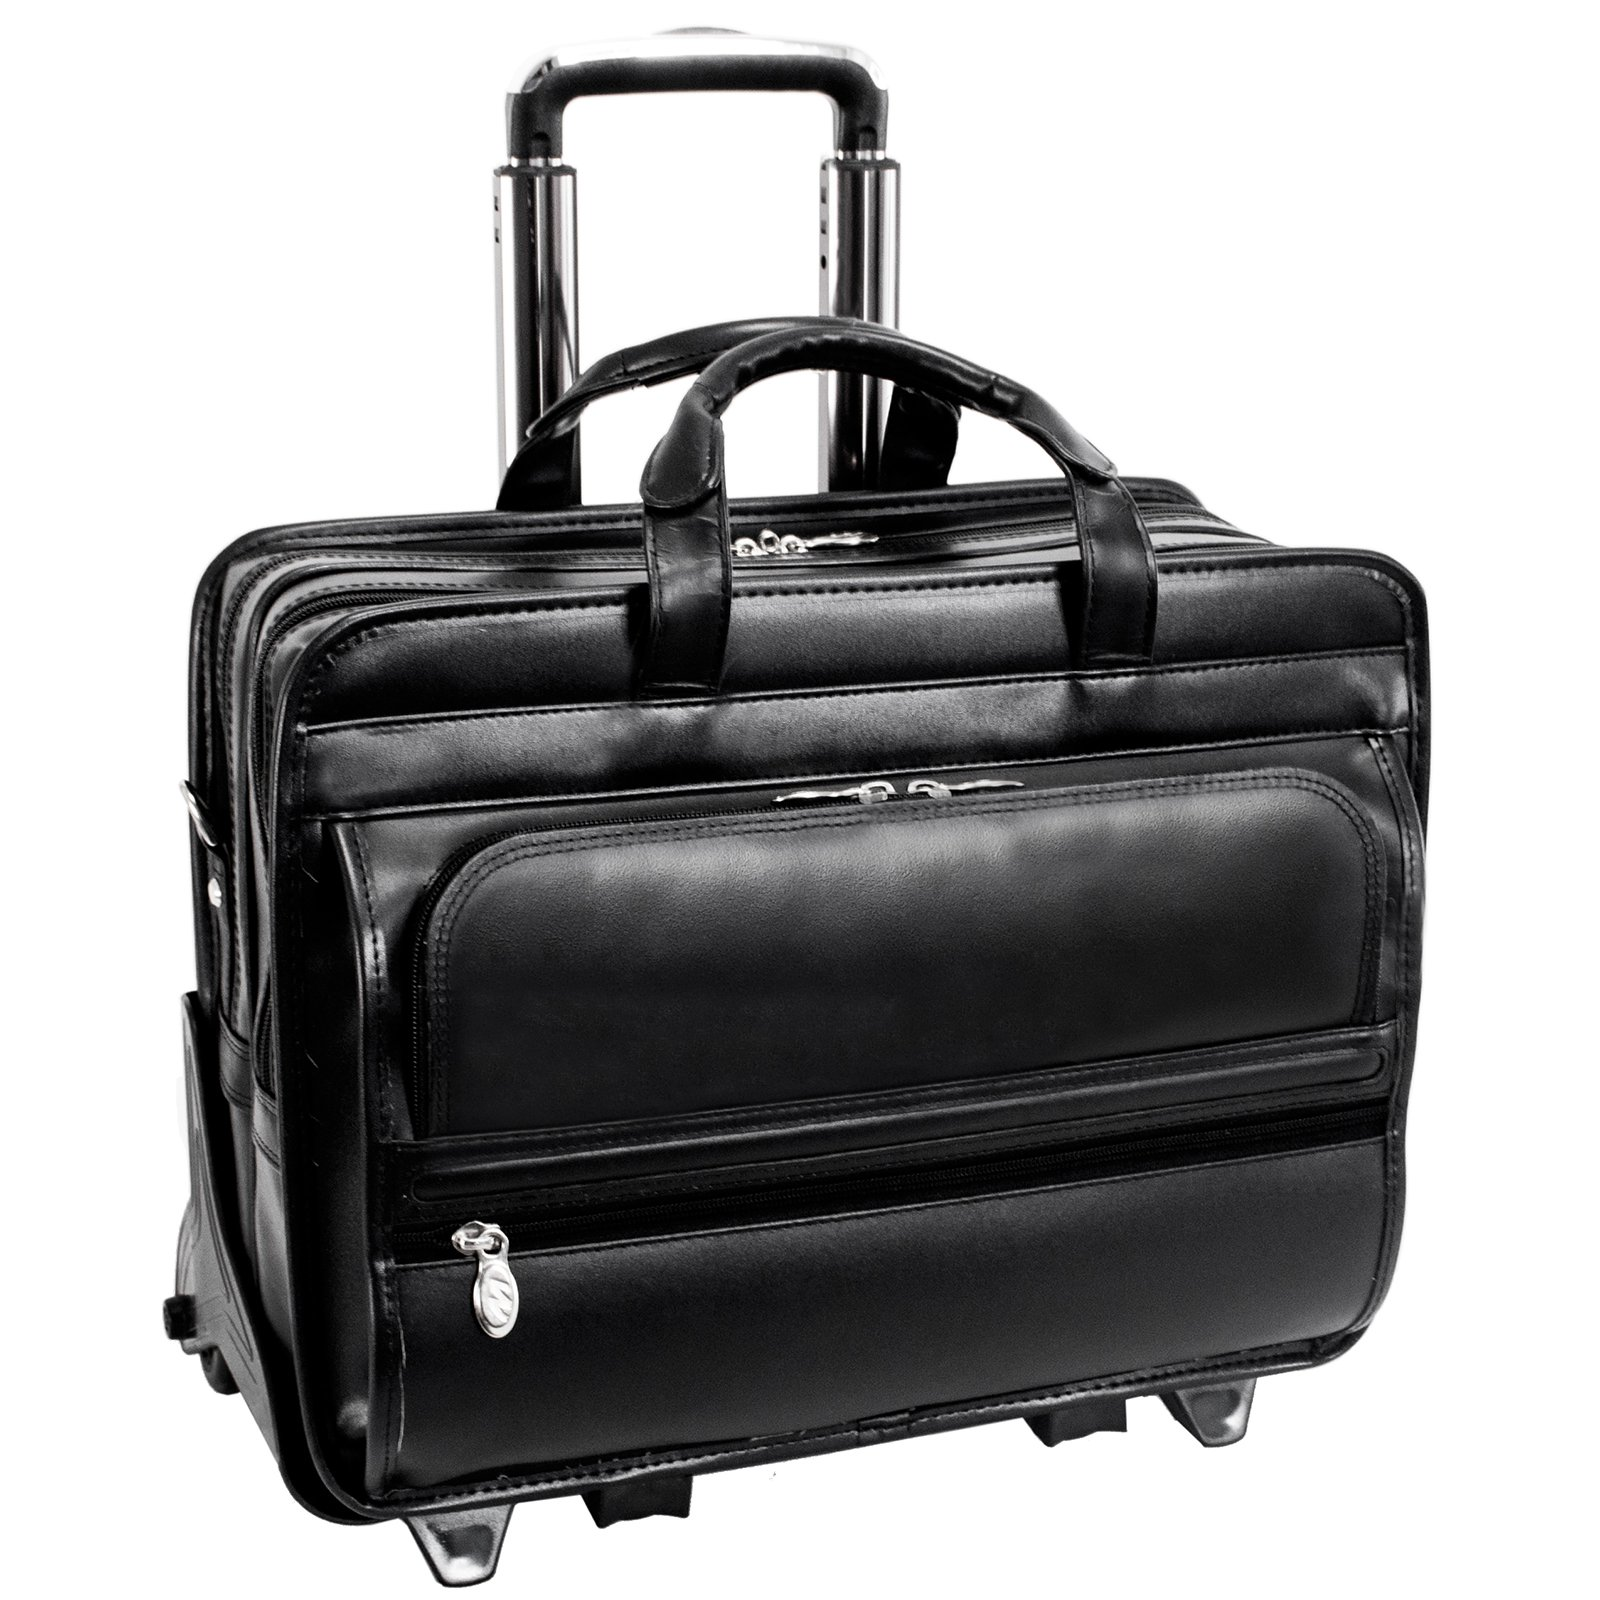 McKlein USA Franklin Leather 17 Inch Detachable Wheeled Laptop Case - Black